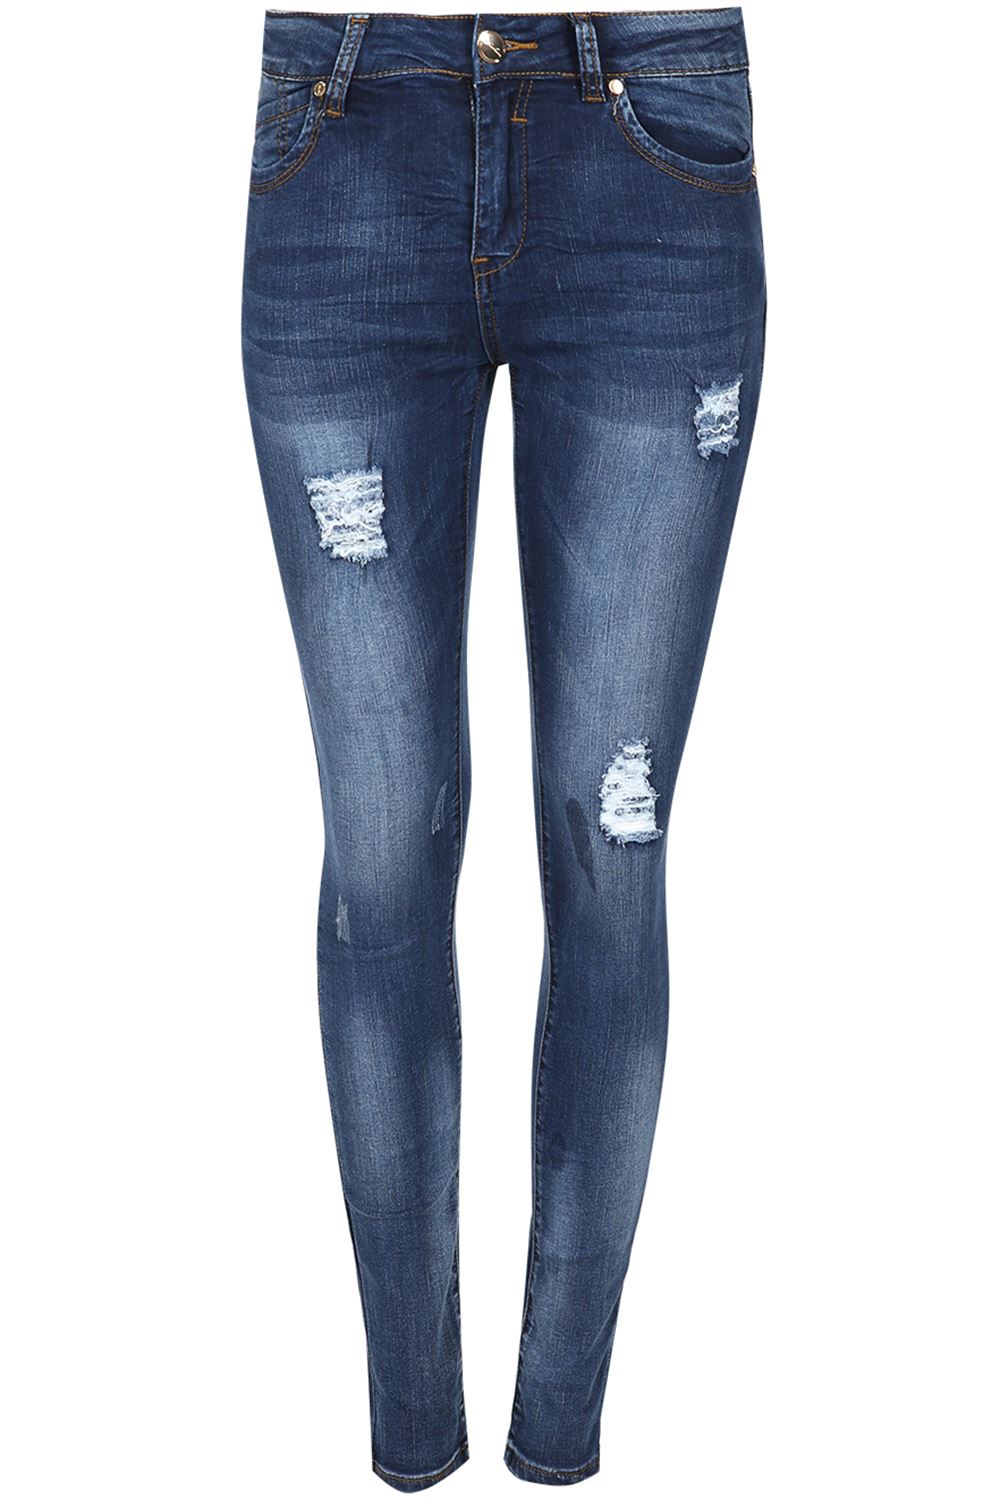 Boyfriend Jeans for Women. The Boyfriend Jean from Abercrombie & Fitch is the ultimate in relaxed fit jeans. As stylish as they are comfortable, a pair of boyfriend jeans belongs in every woman's closet.